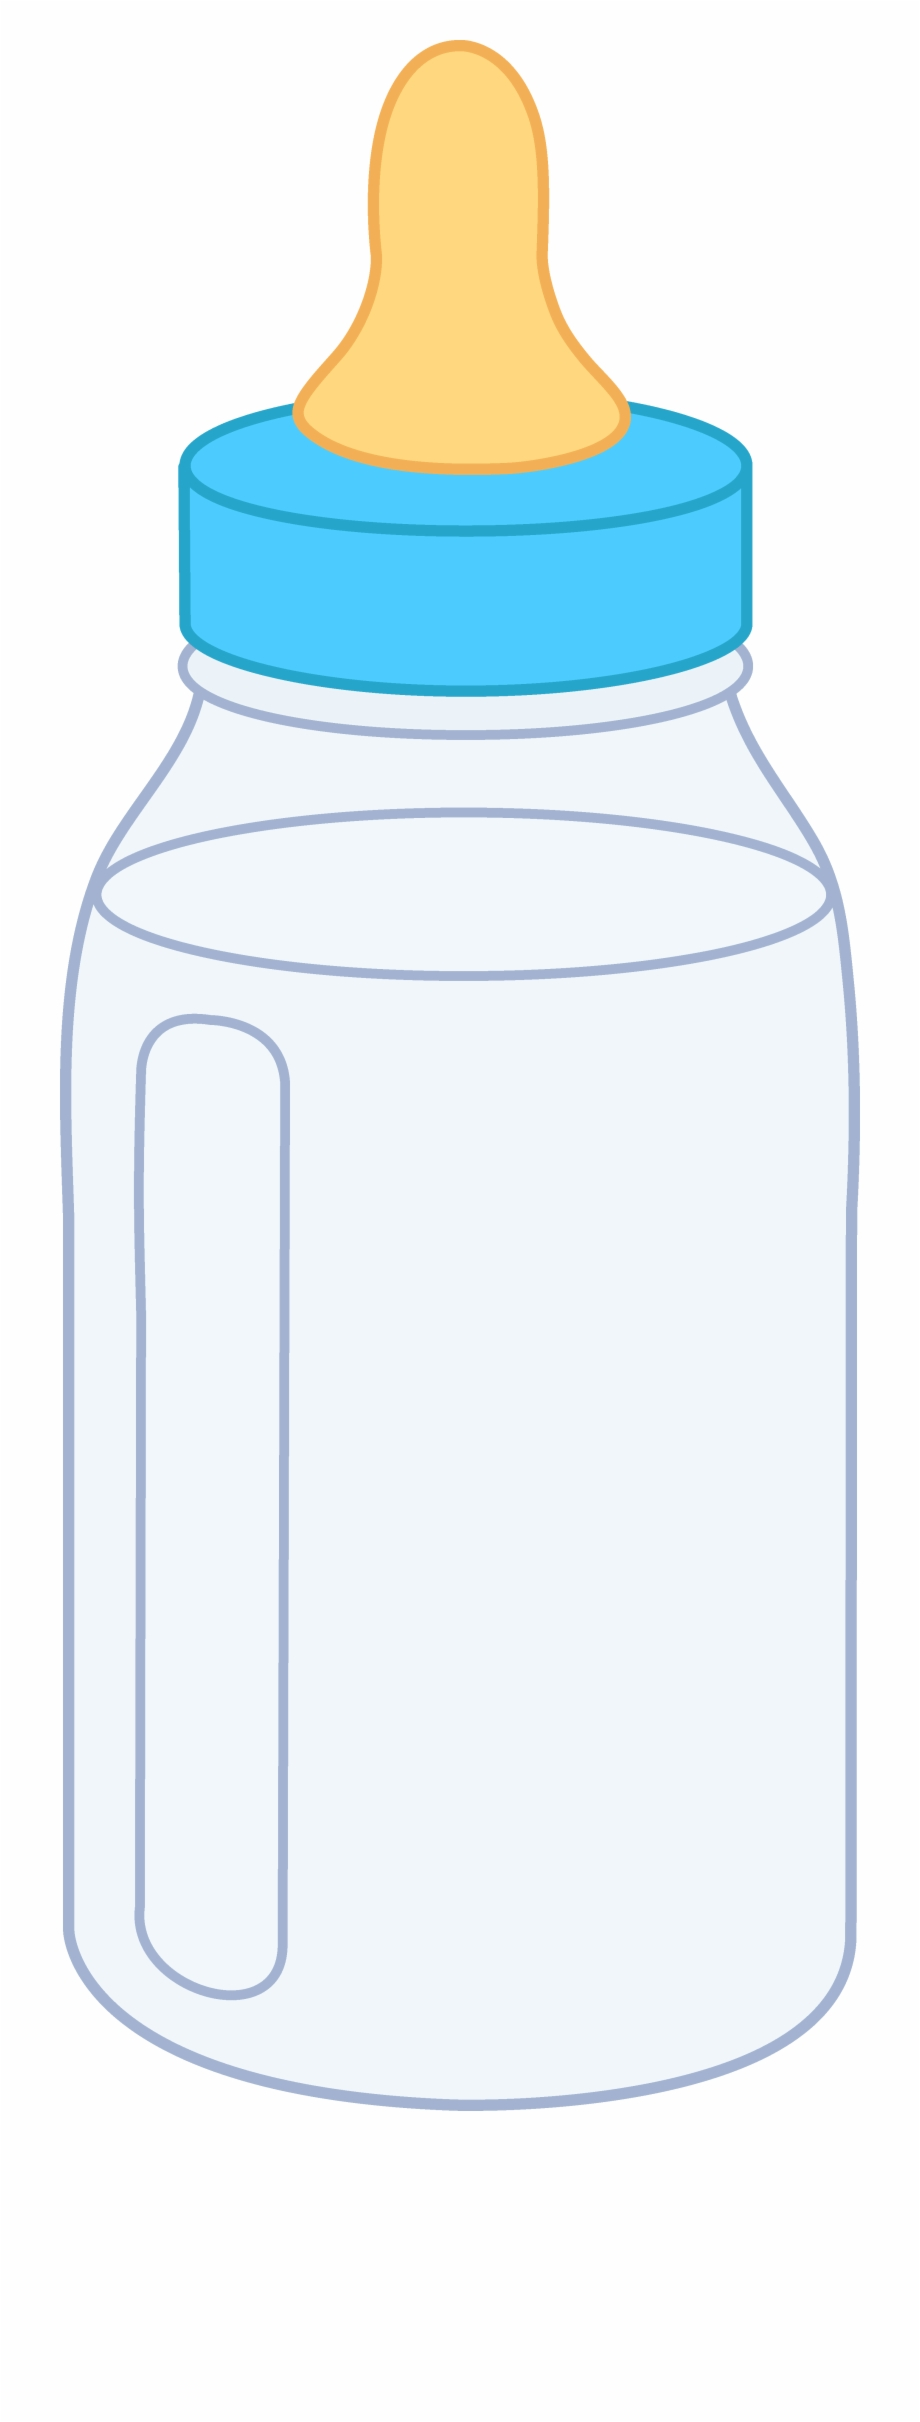 Baby Bottle Clipart : bottle, clipart, Bottle, Clipart, Download, Library